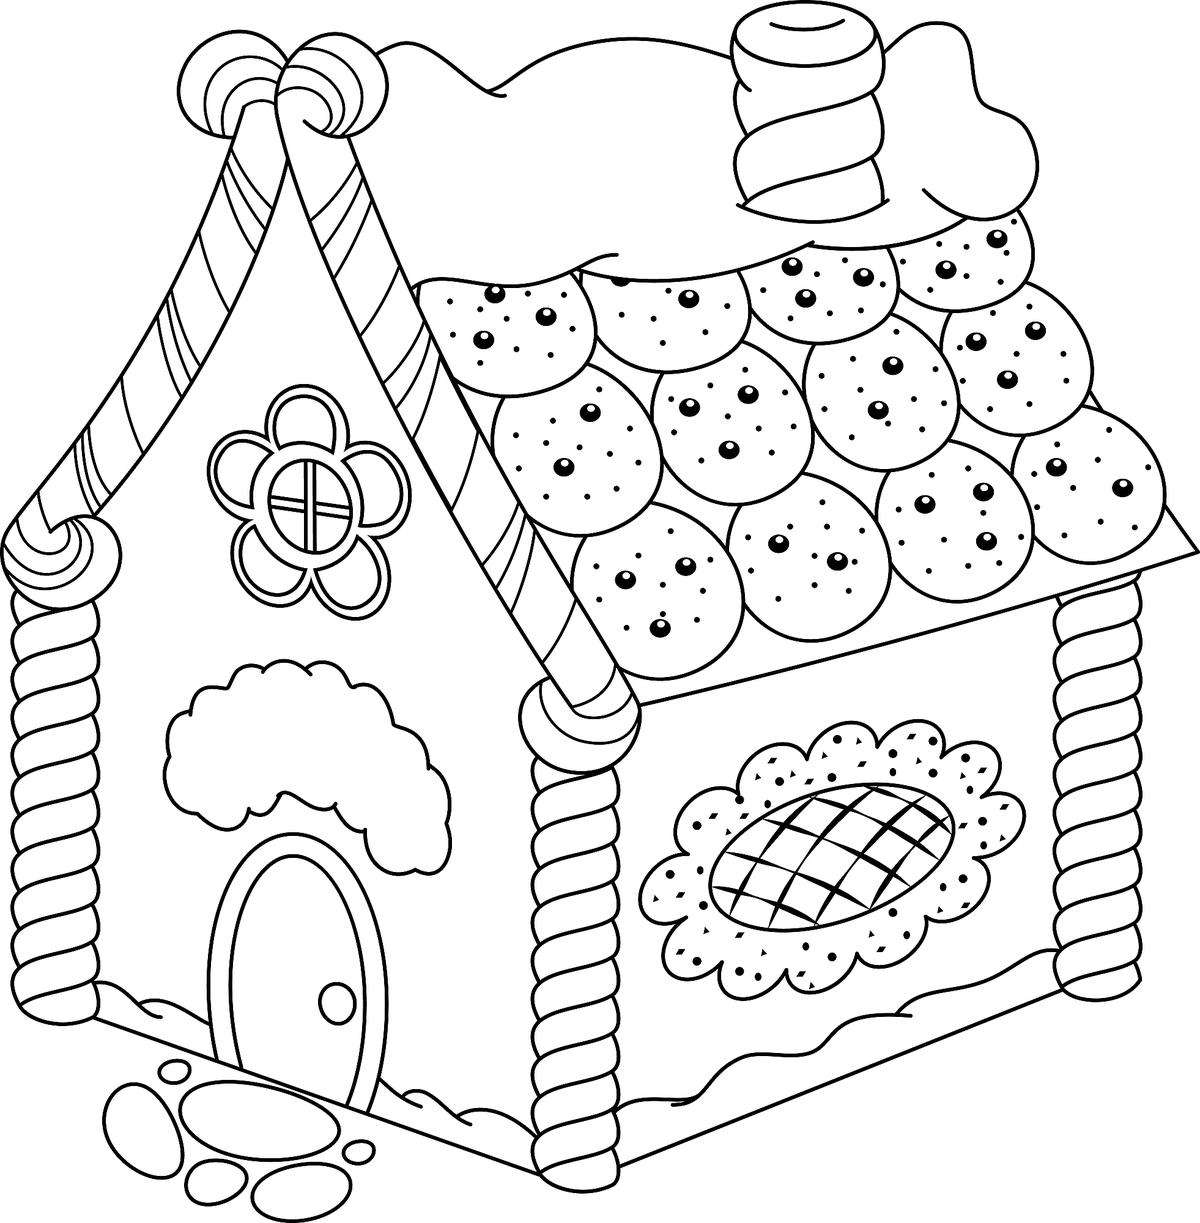 gingerbread house coloring sheet get this kids39 printable gingerbread house coloring pages coloring sheet gingerbread house